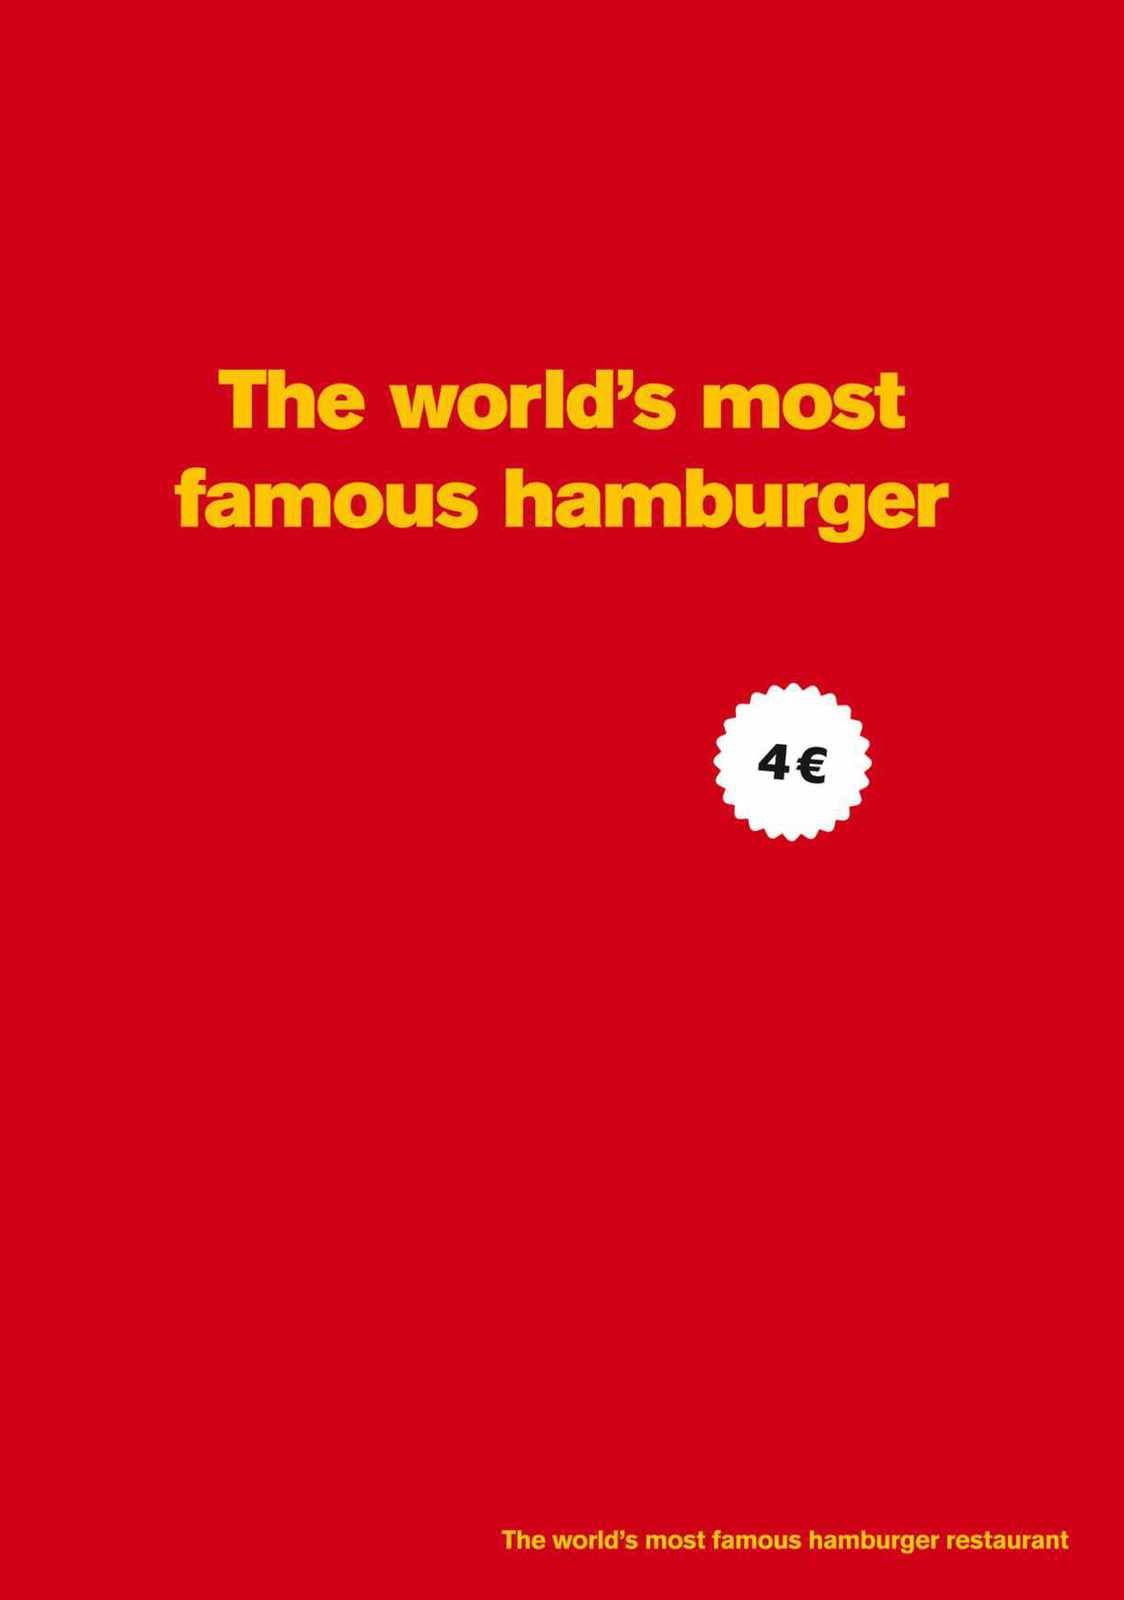 """McDonald's Big mac: The world's most famous hamburger"" 